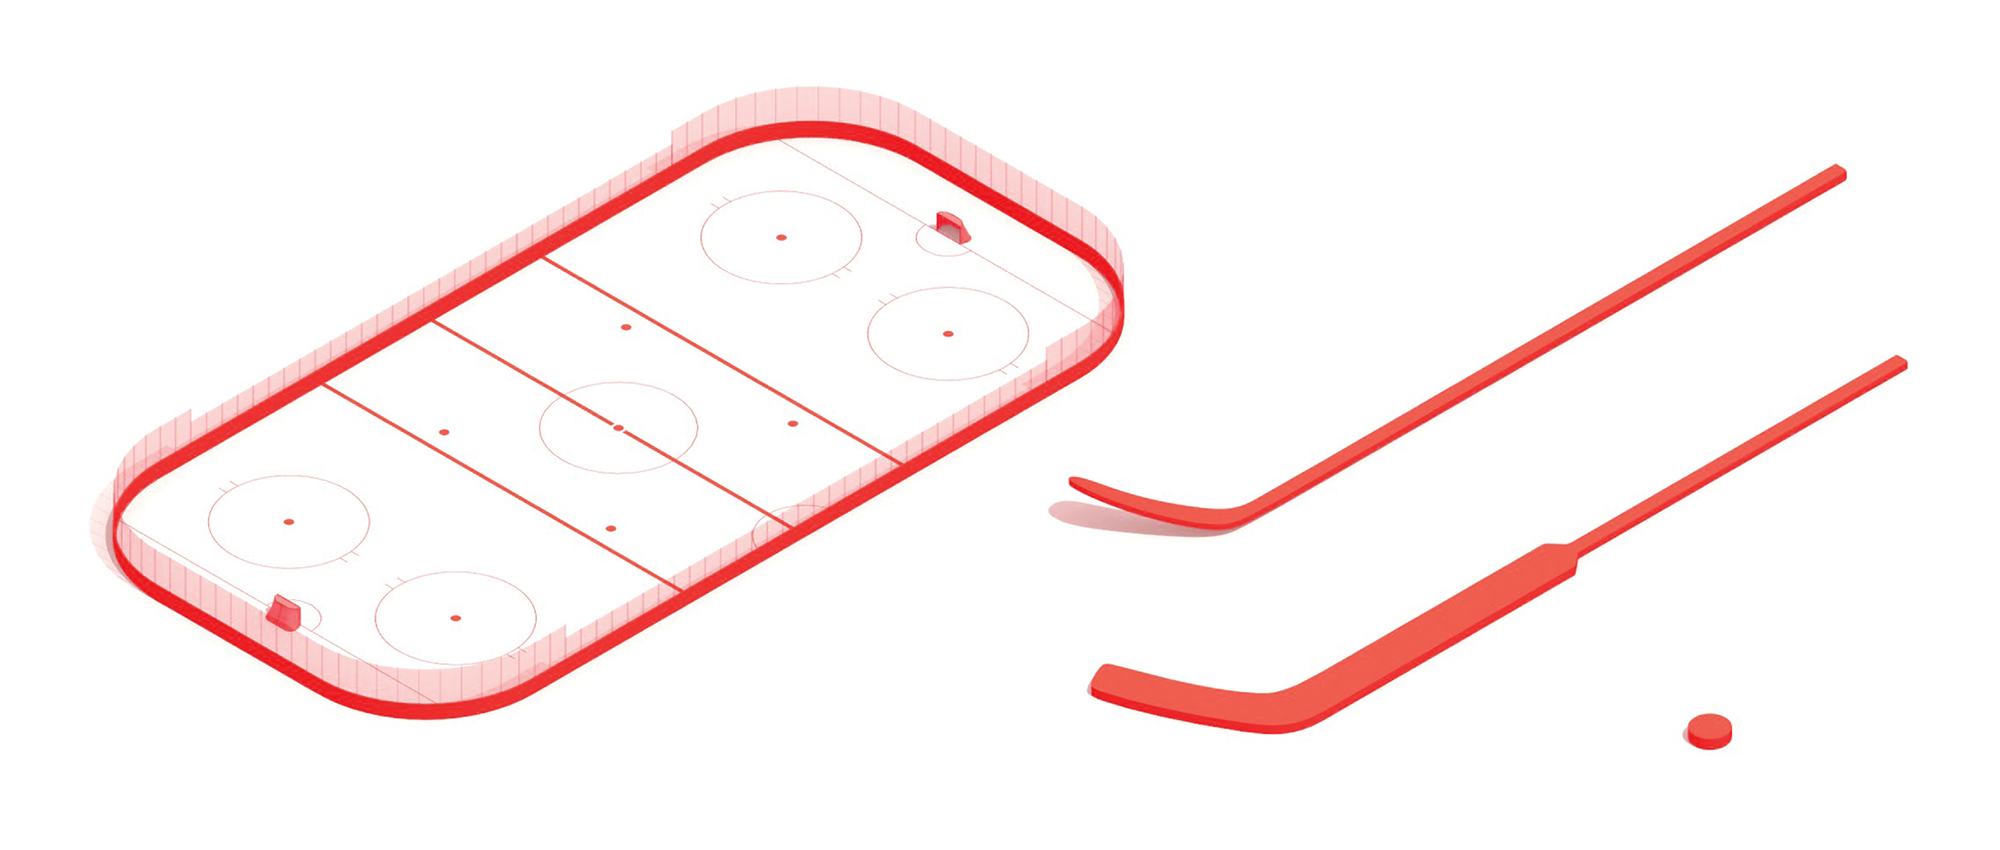 Group of 3D drawings of the elements of Ice Hockey including hockey sticks, puck, and the ice hockey rink